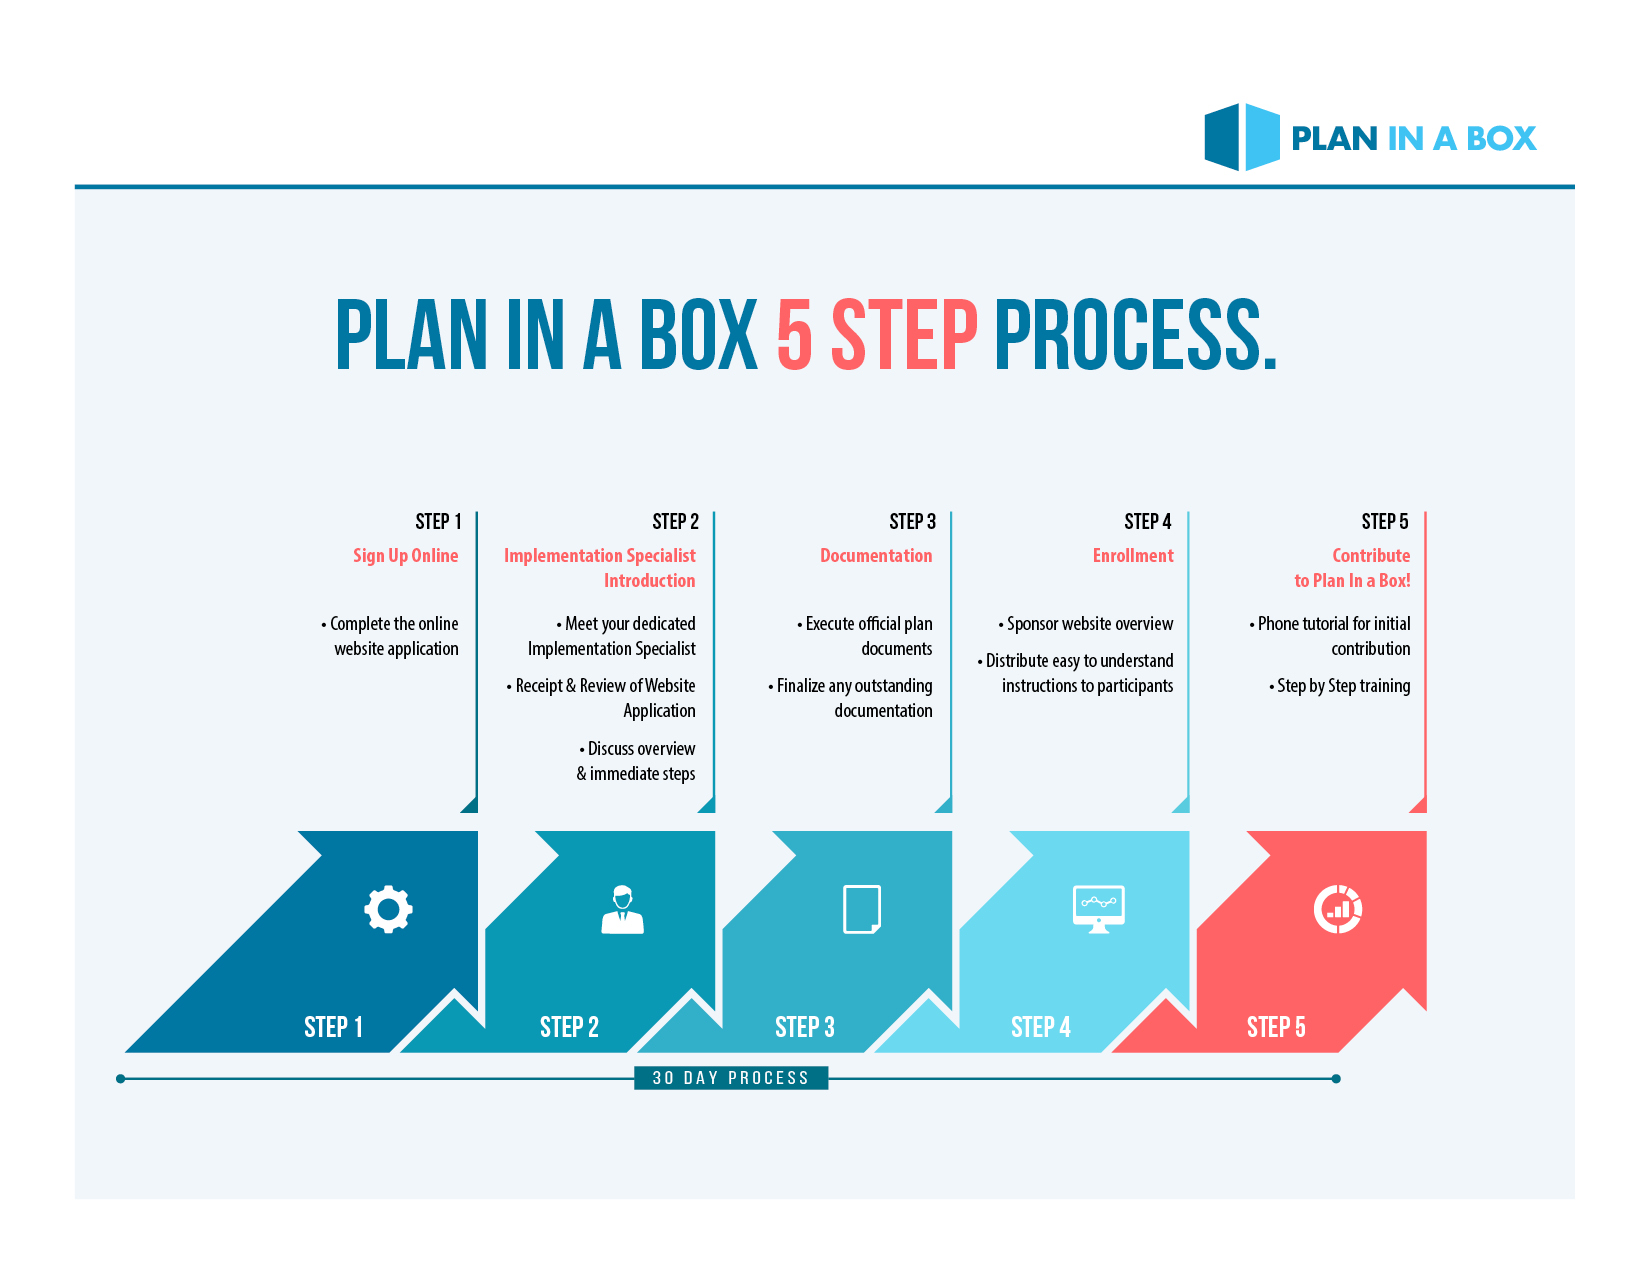 Plan in a Box 5 Step Process